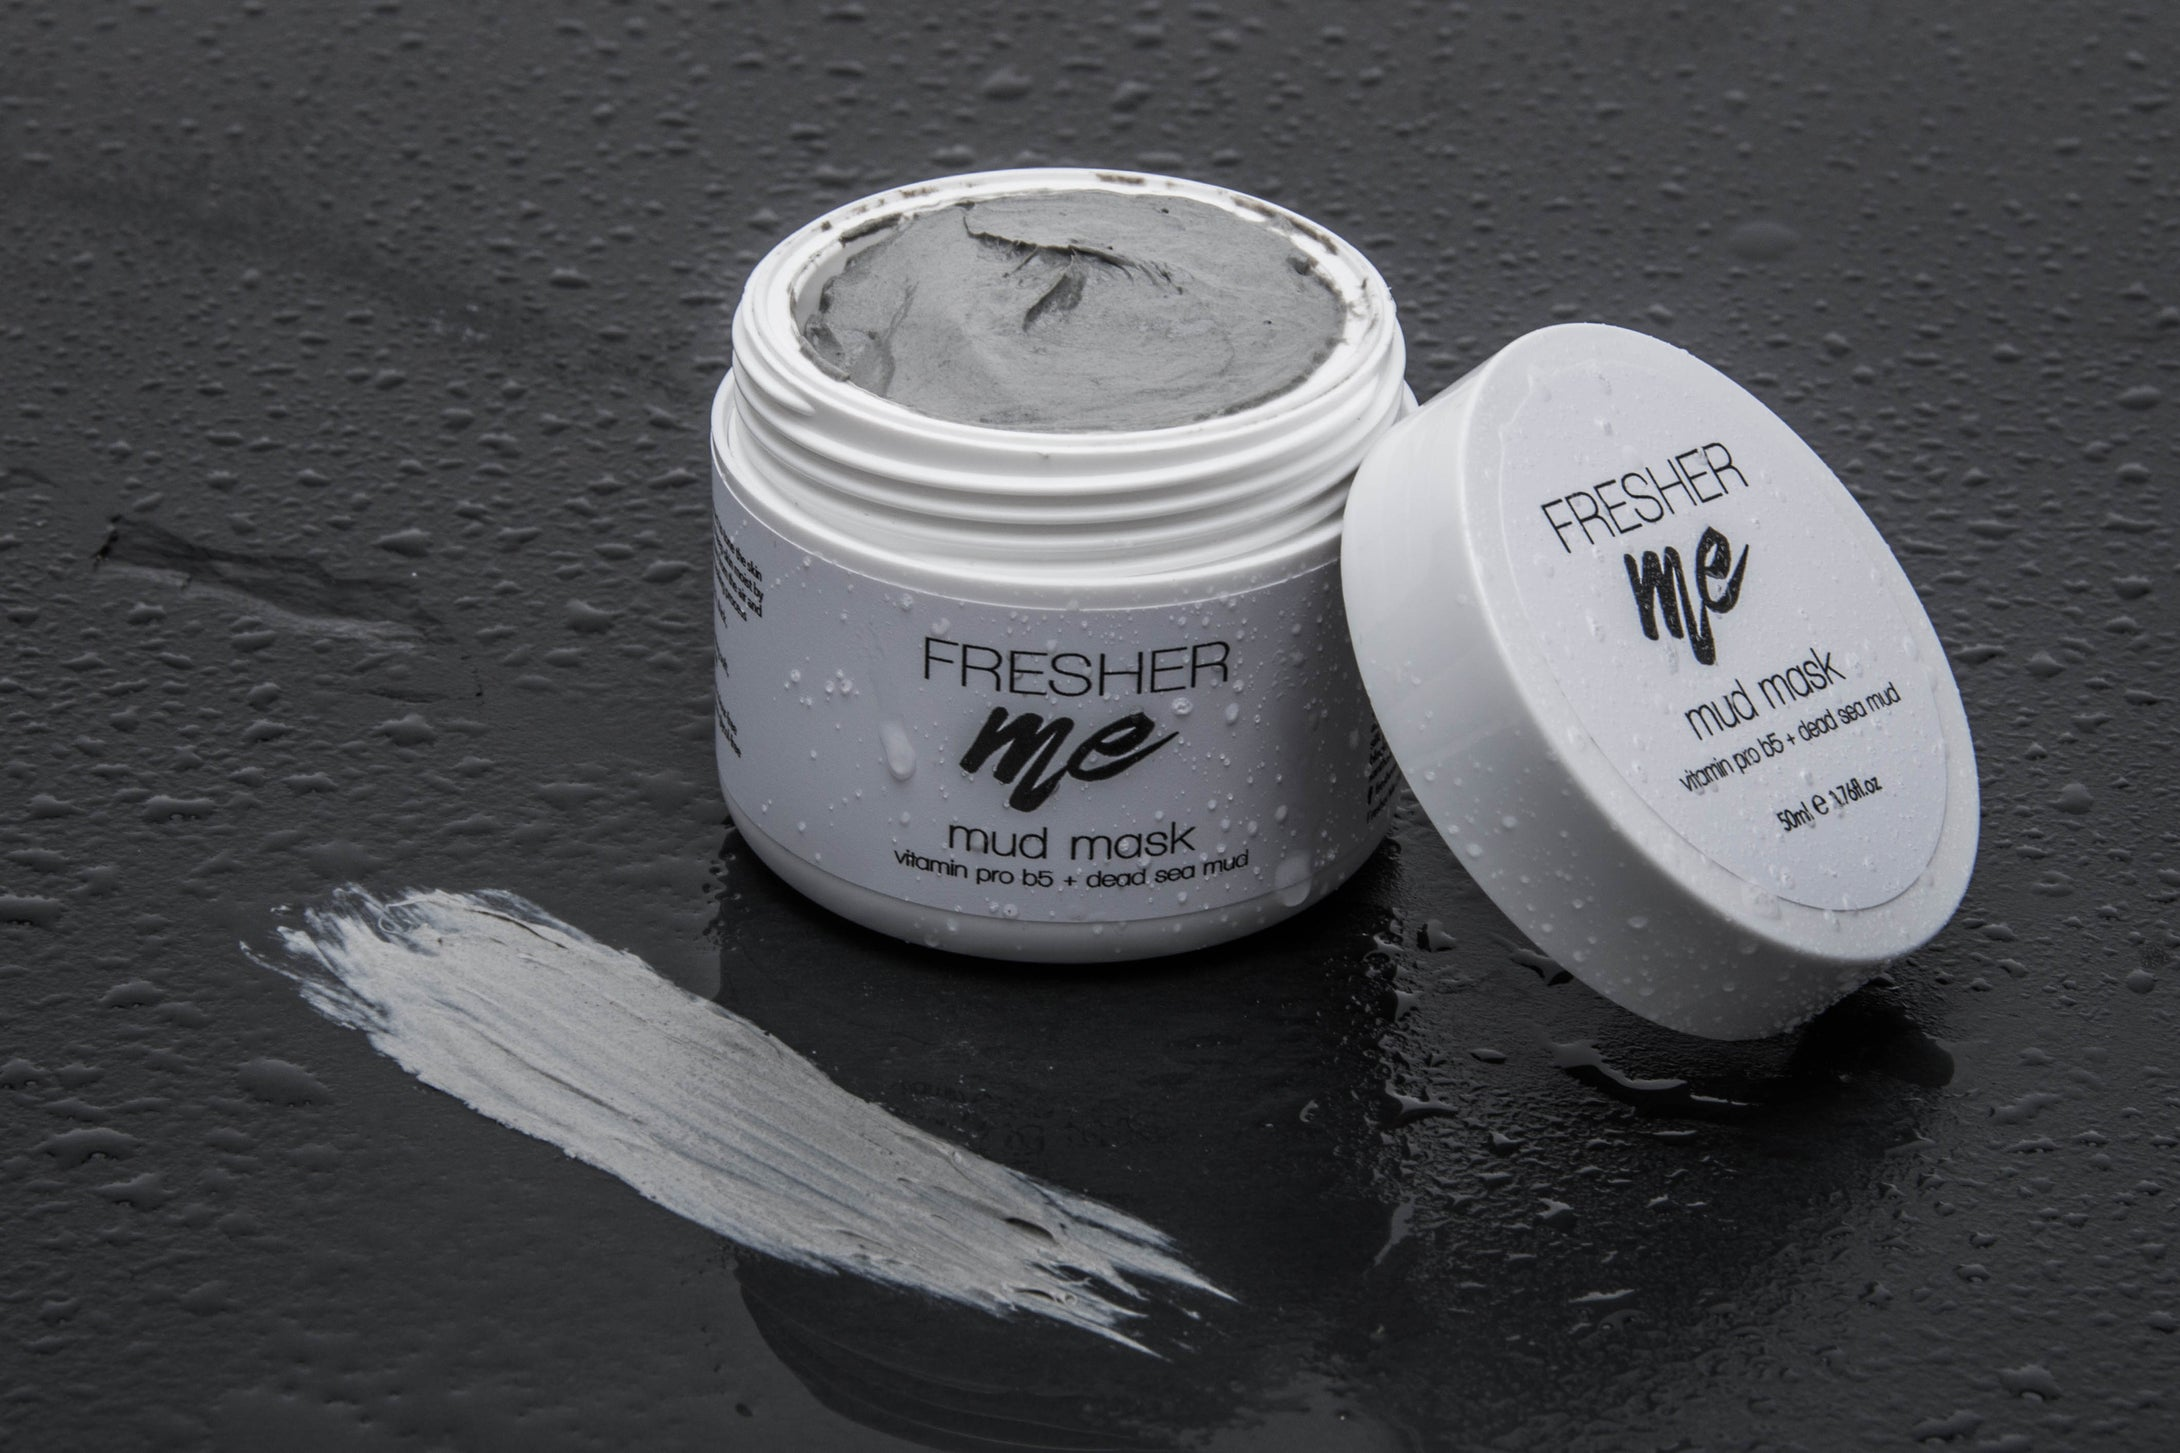 The Fresher Me™ Mud Mask